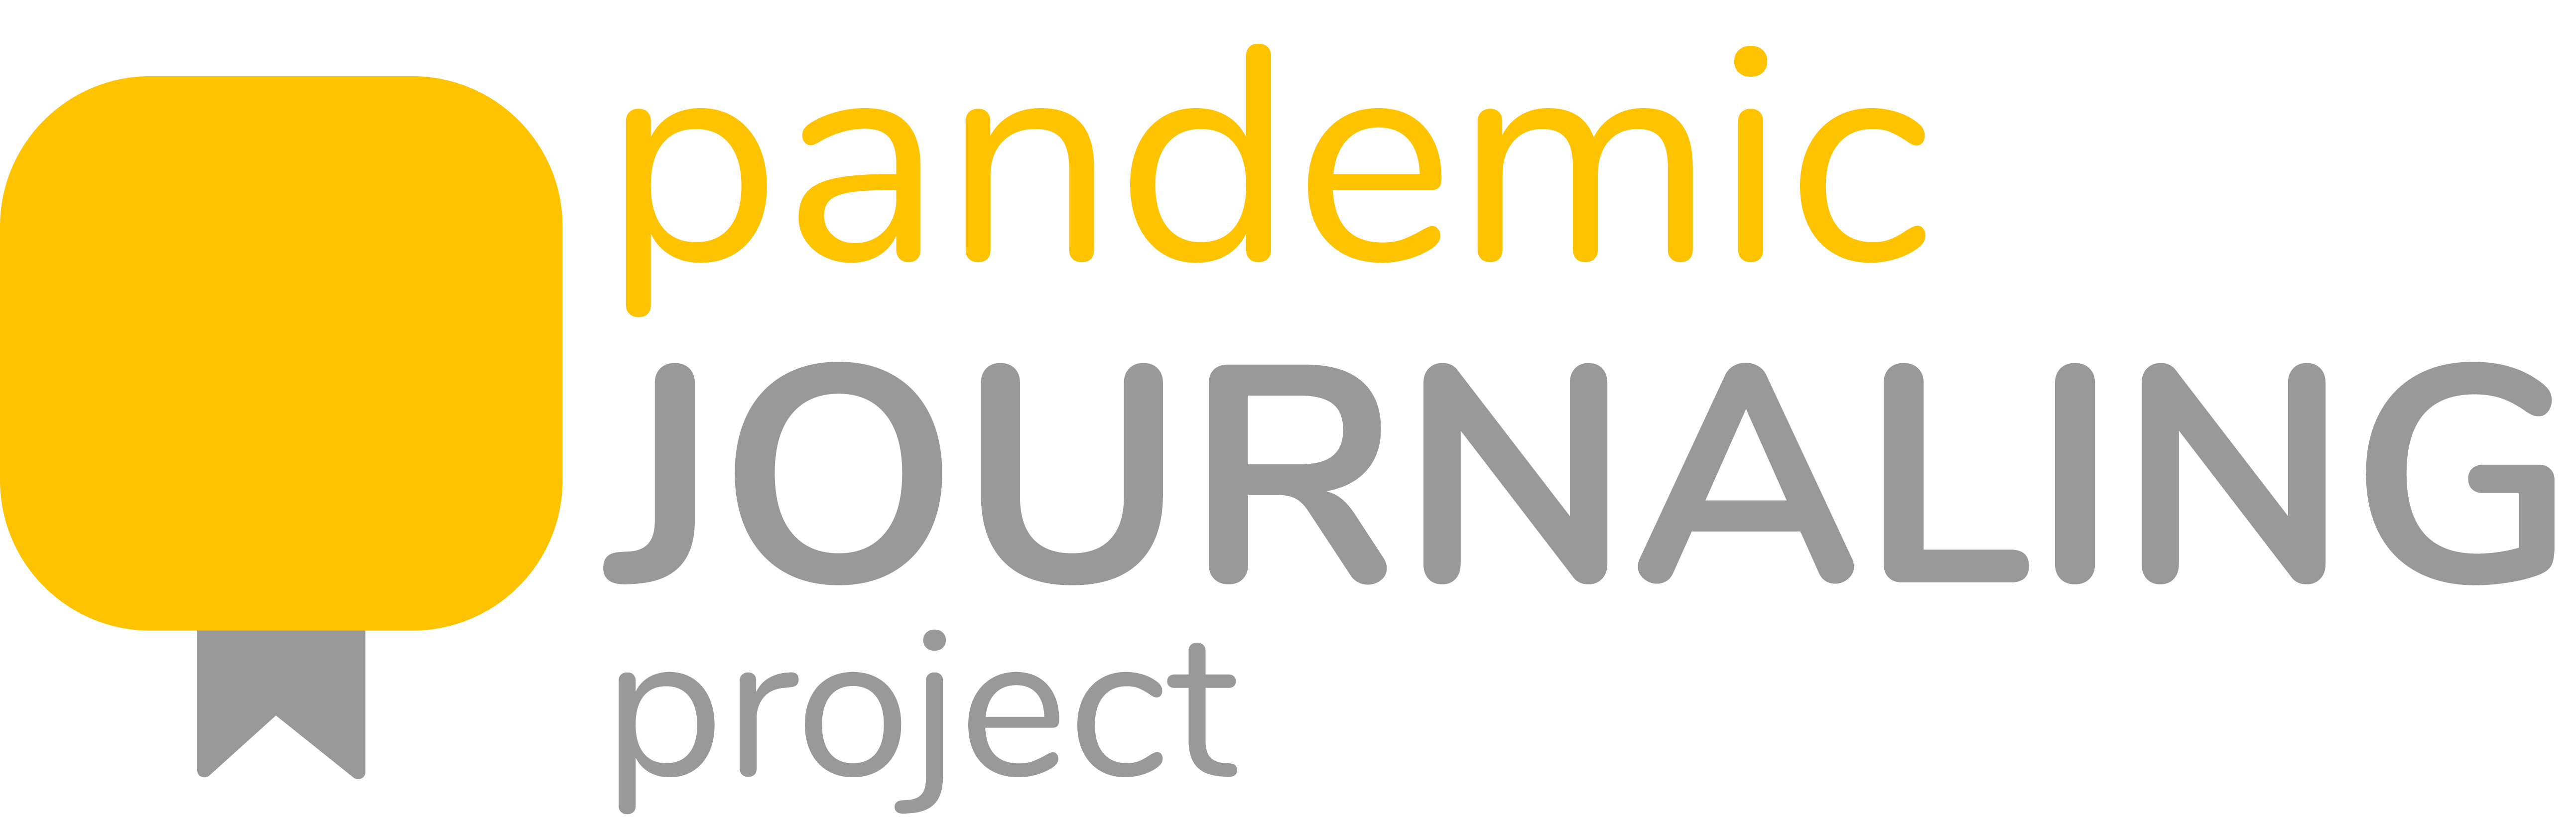 pandemic journal logo - pjp_Logo_Draft2_v9